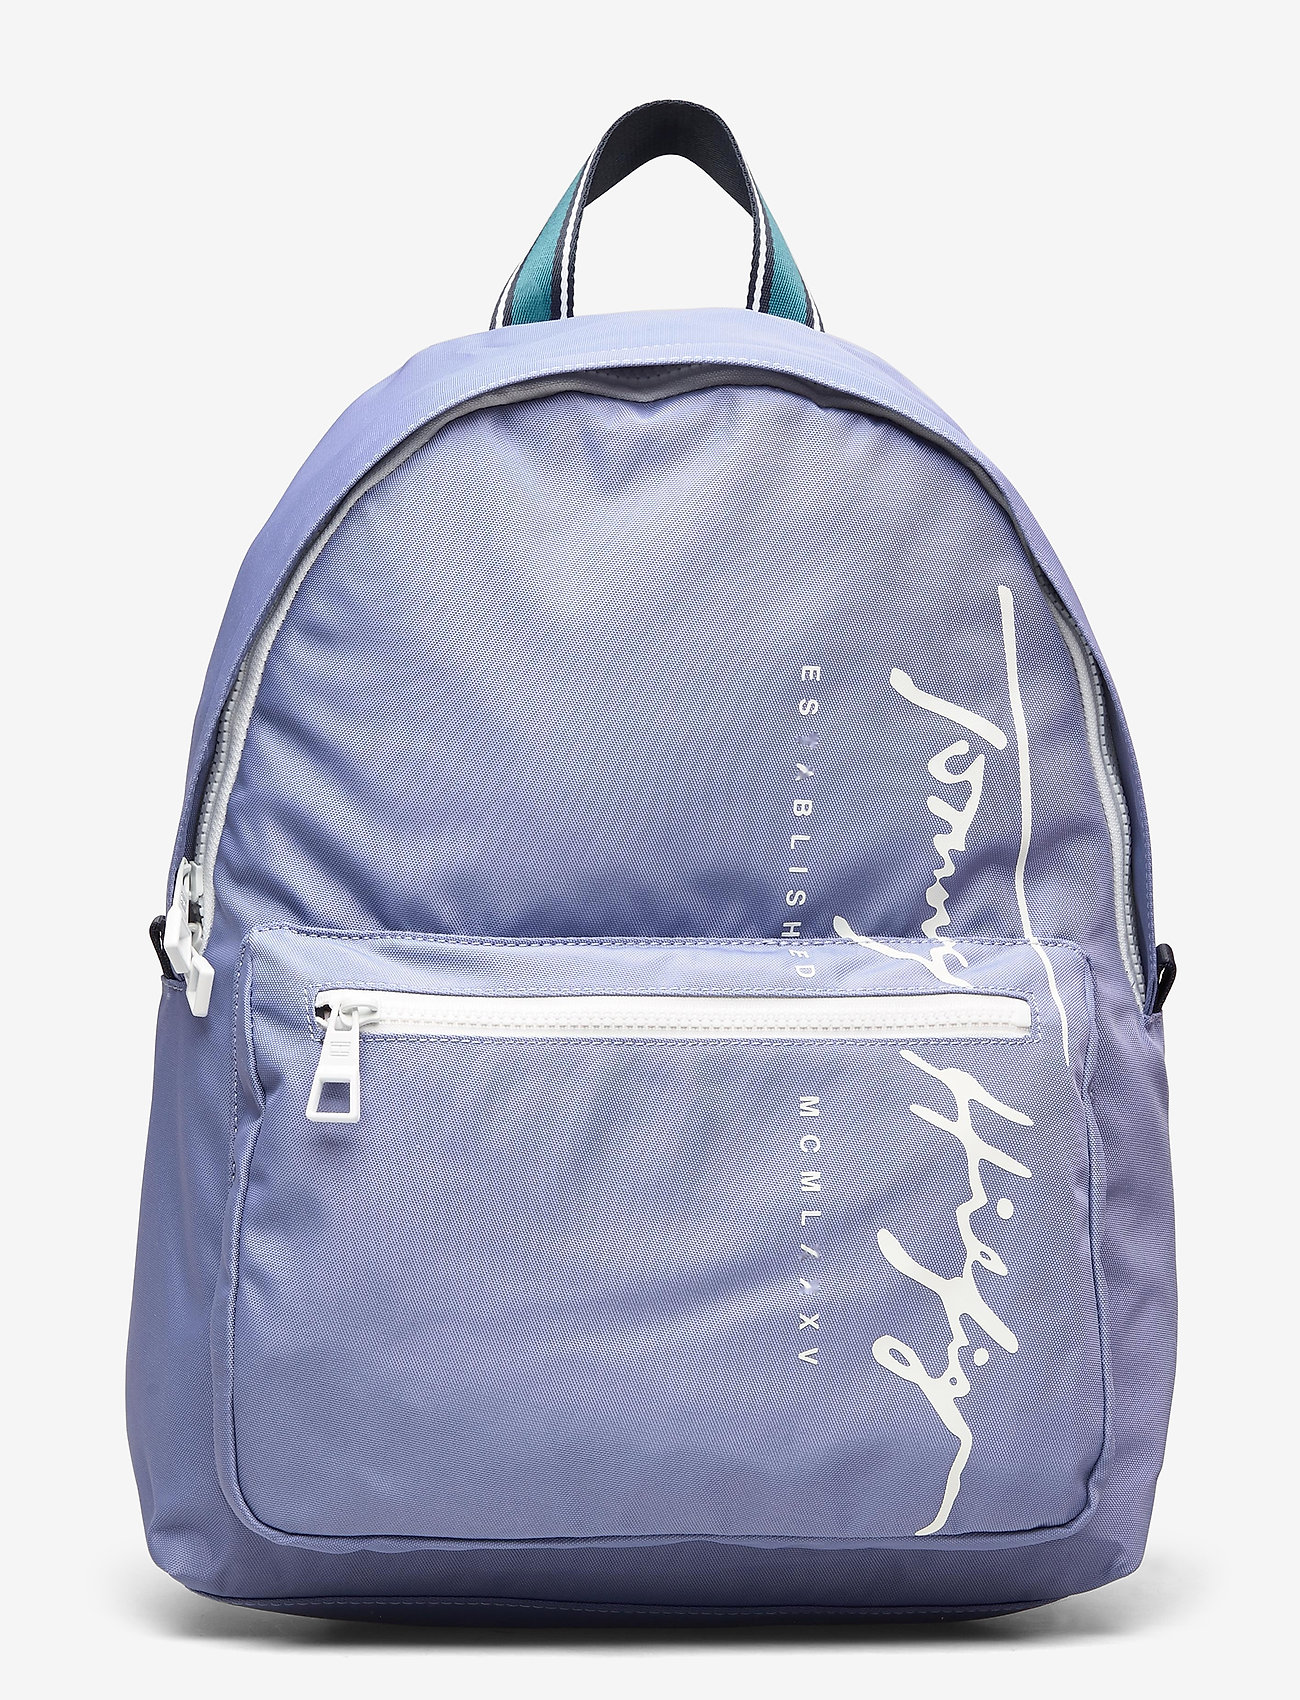 Tommy Hilfiger - TH SIGNATURE BACKPACK - sacs a dos - washed ink - 0